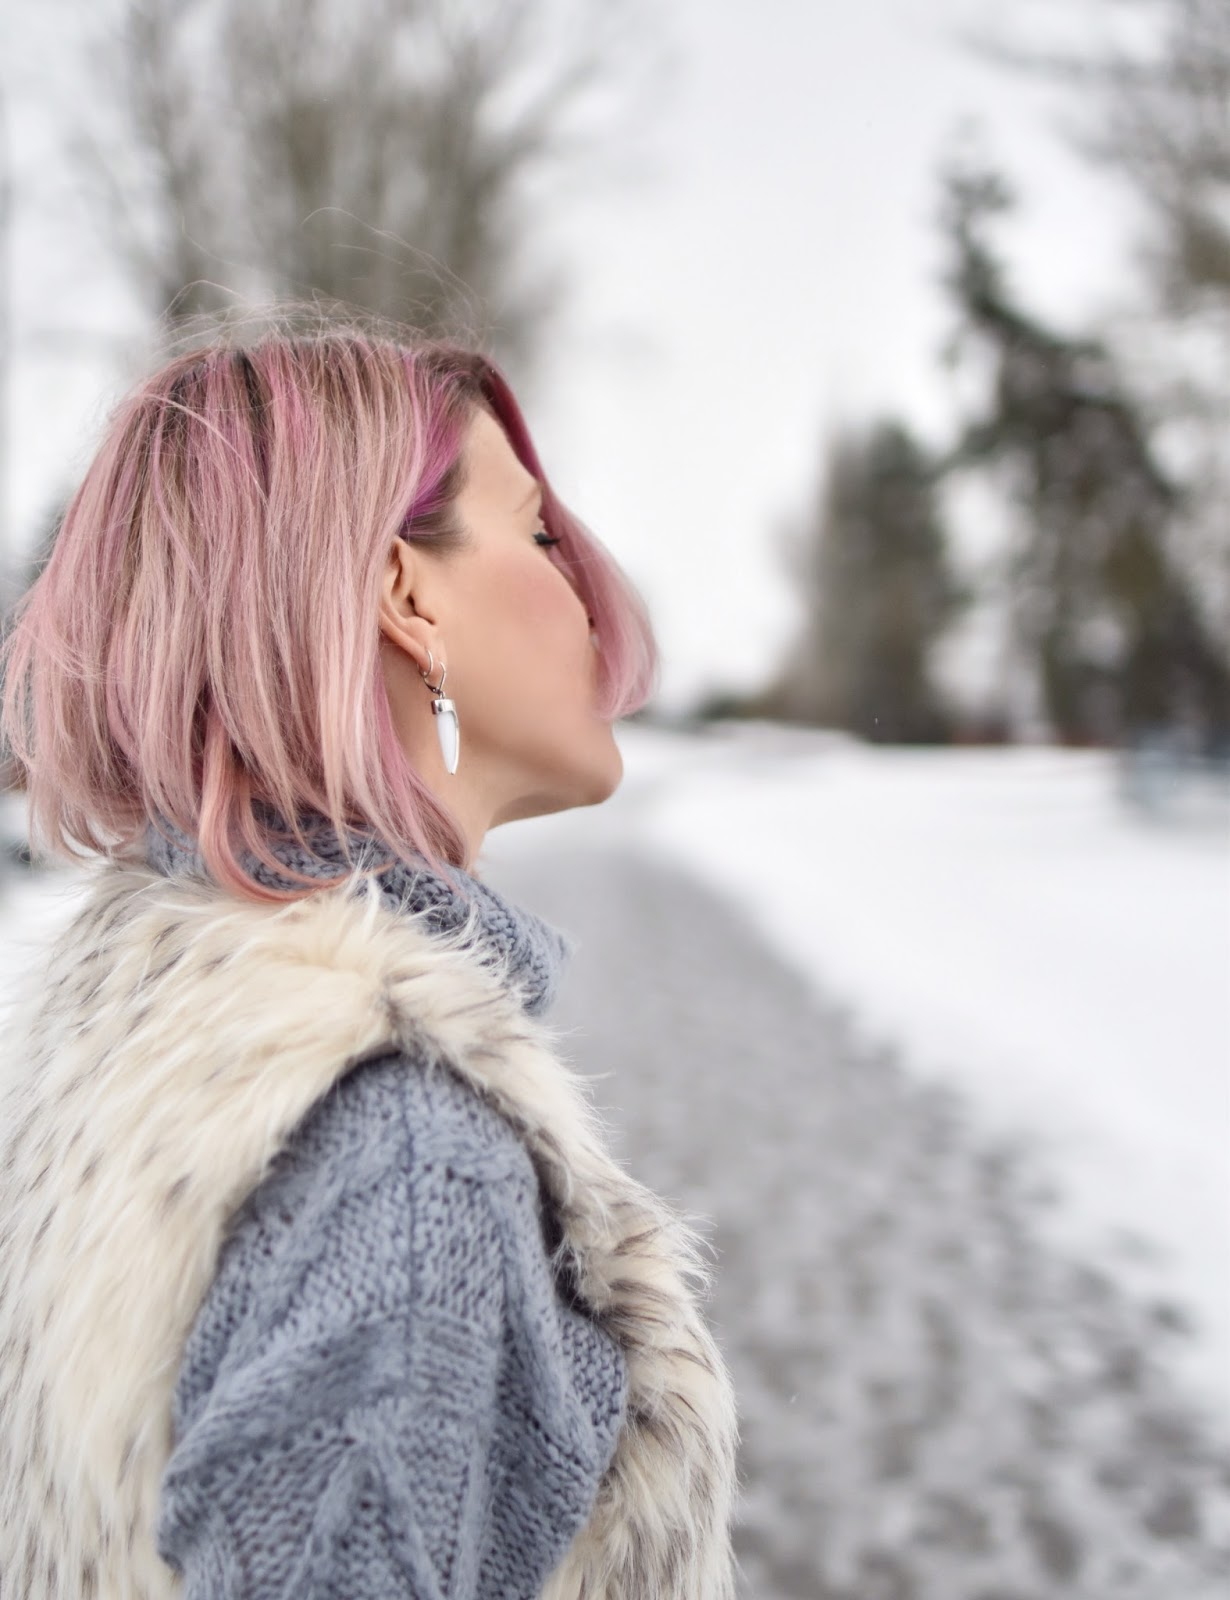 Monika Faulkner outfit inspiration - oversized sweater, faux-fur vest, pink hair